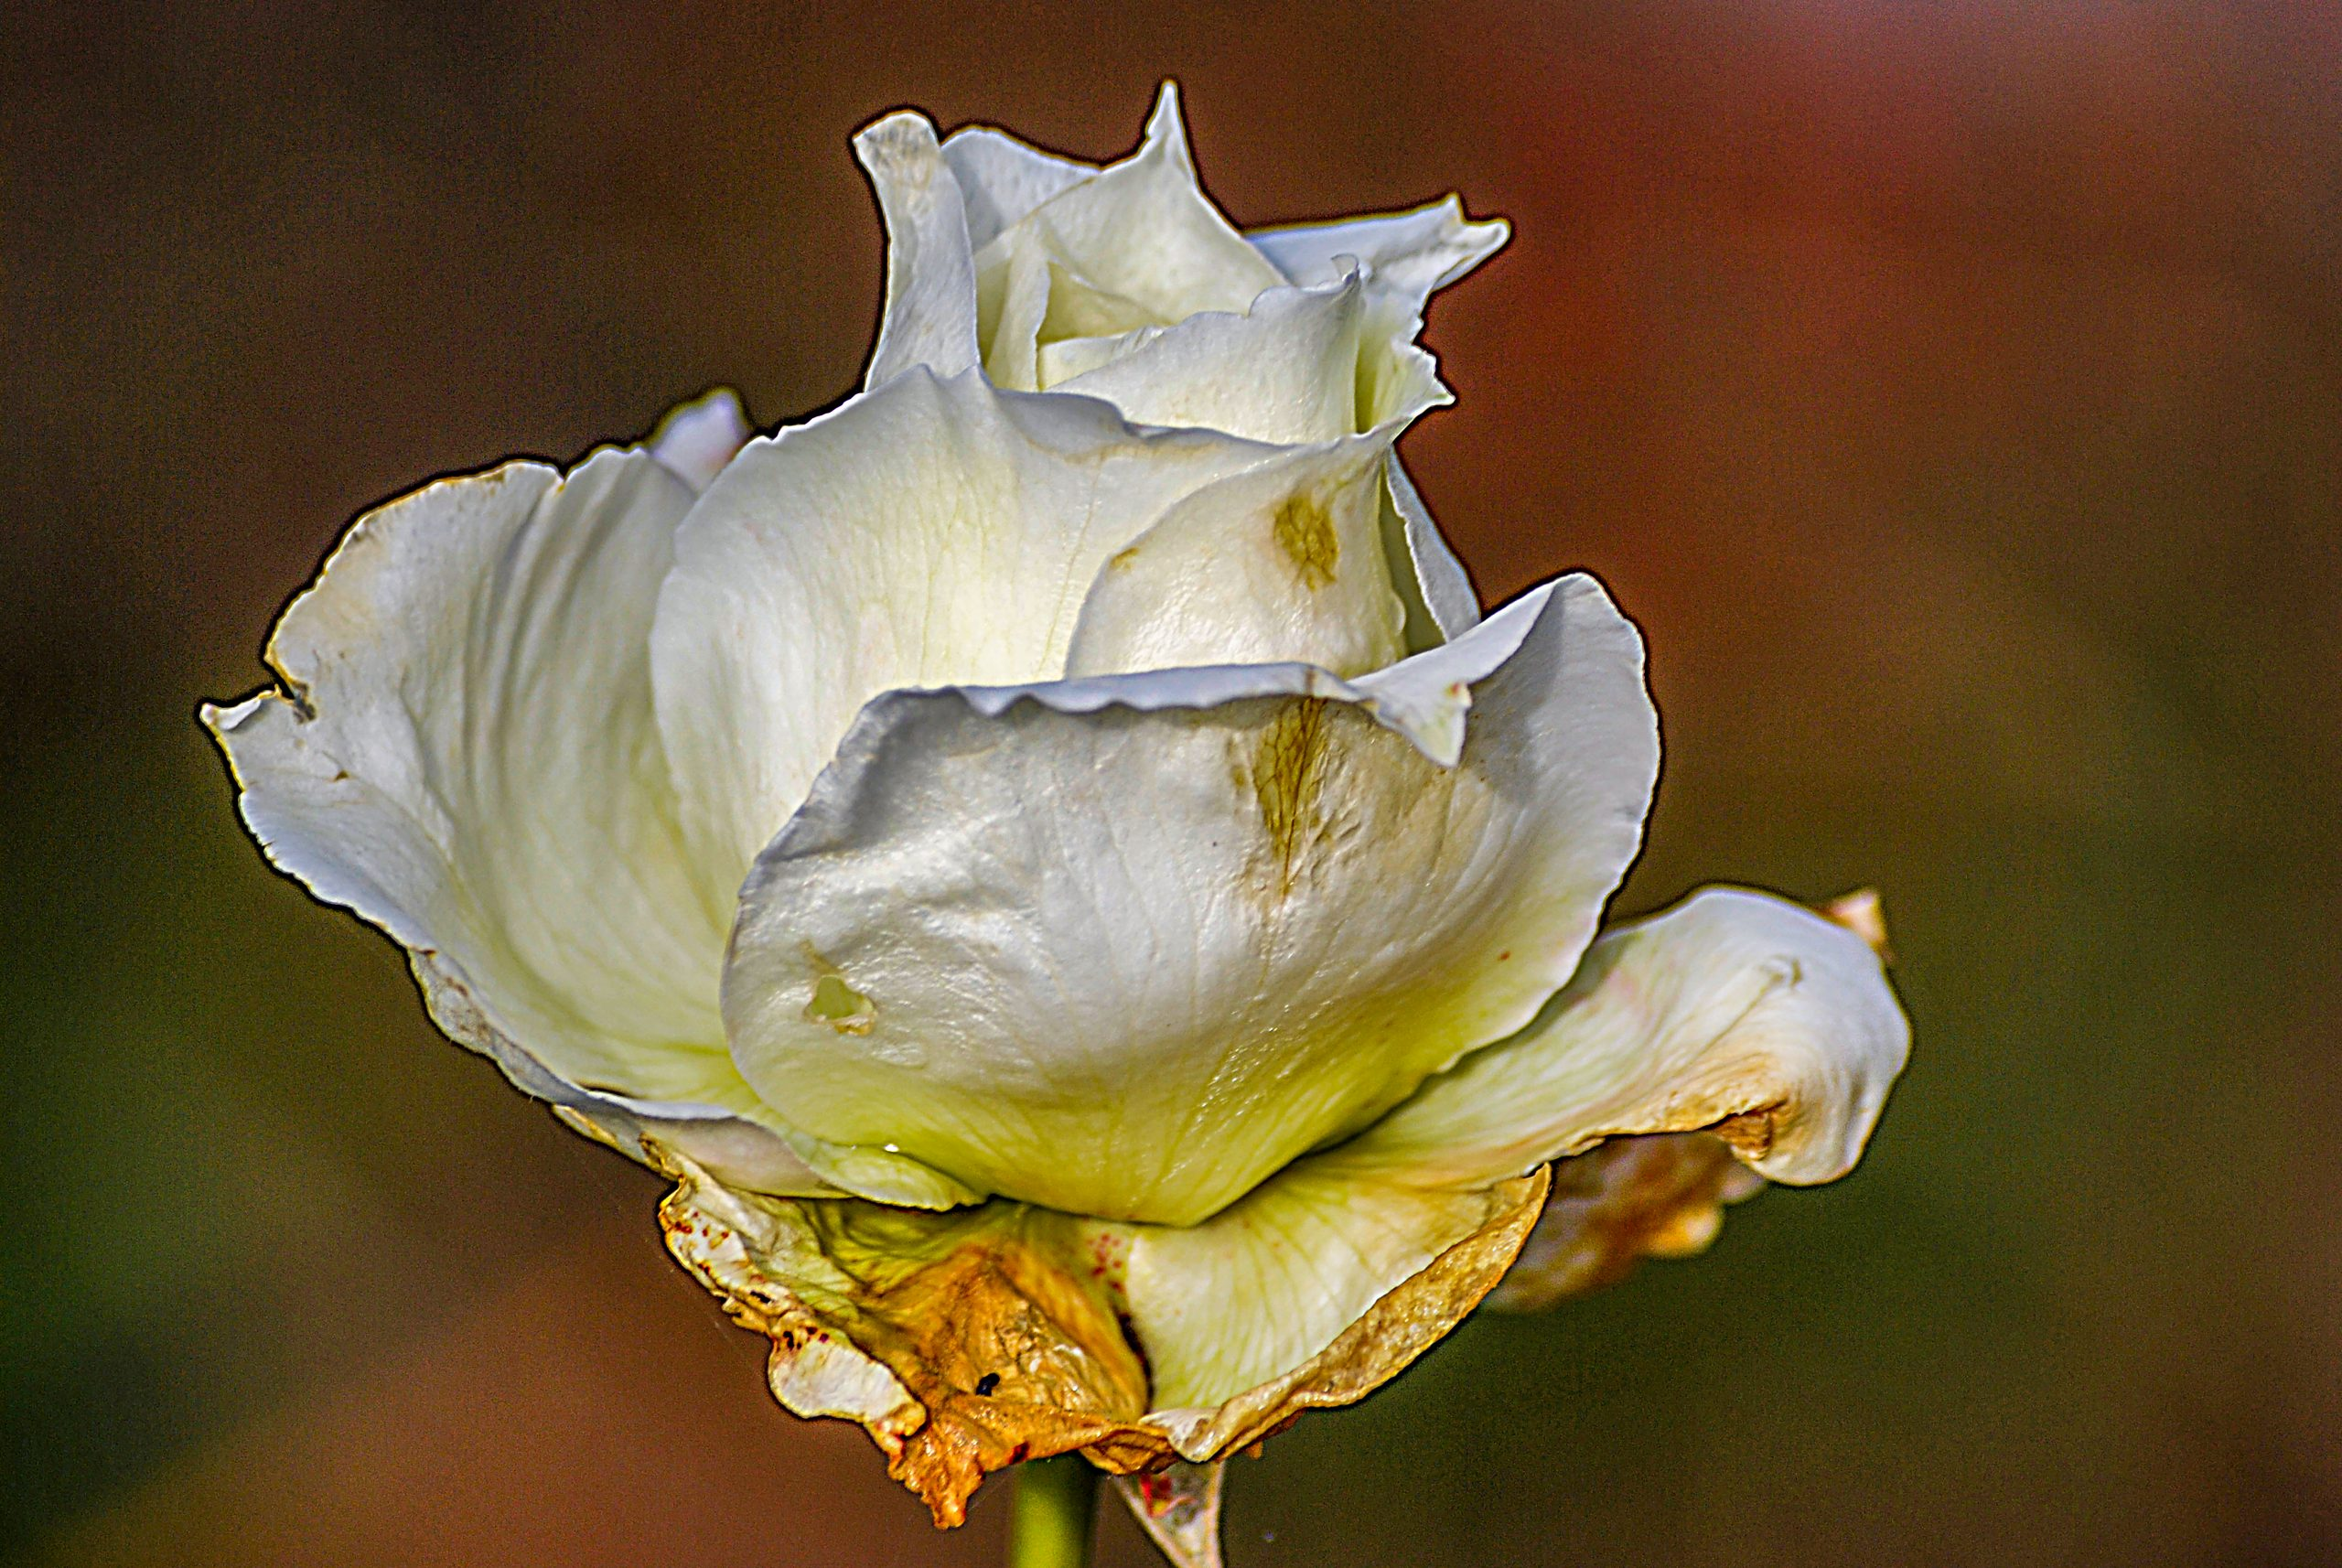 A fading white rose from January 2007